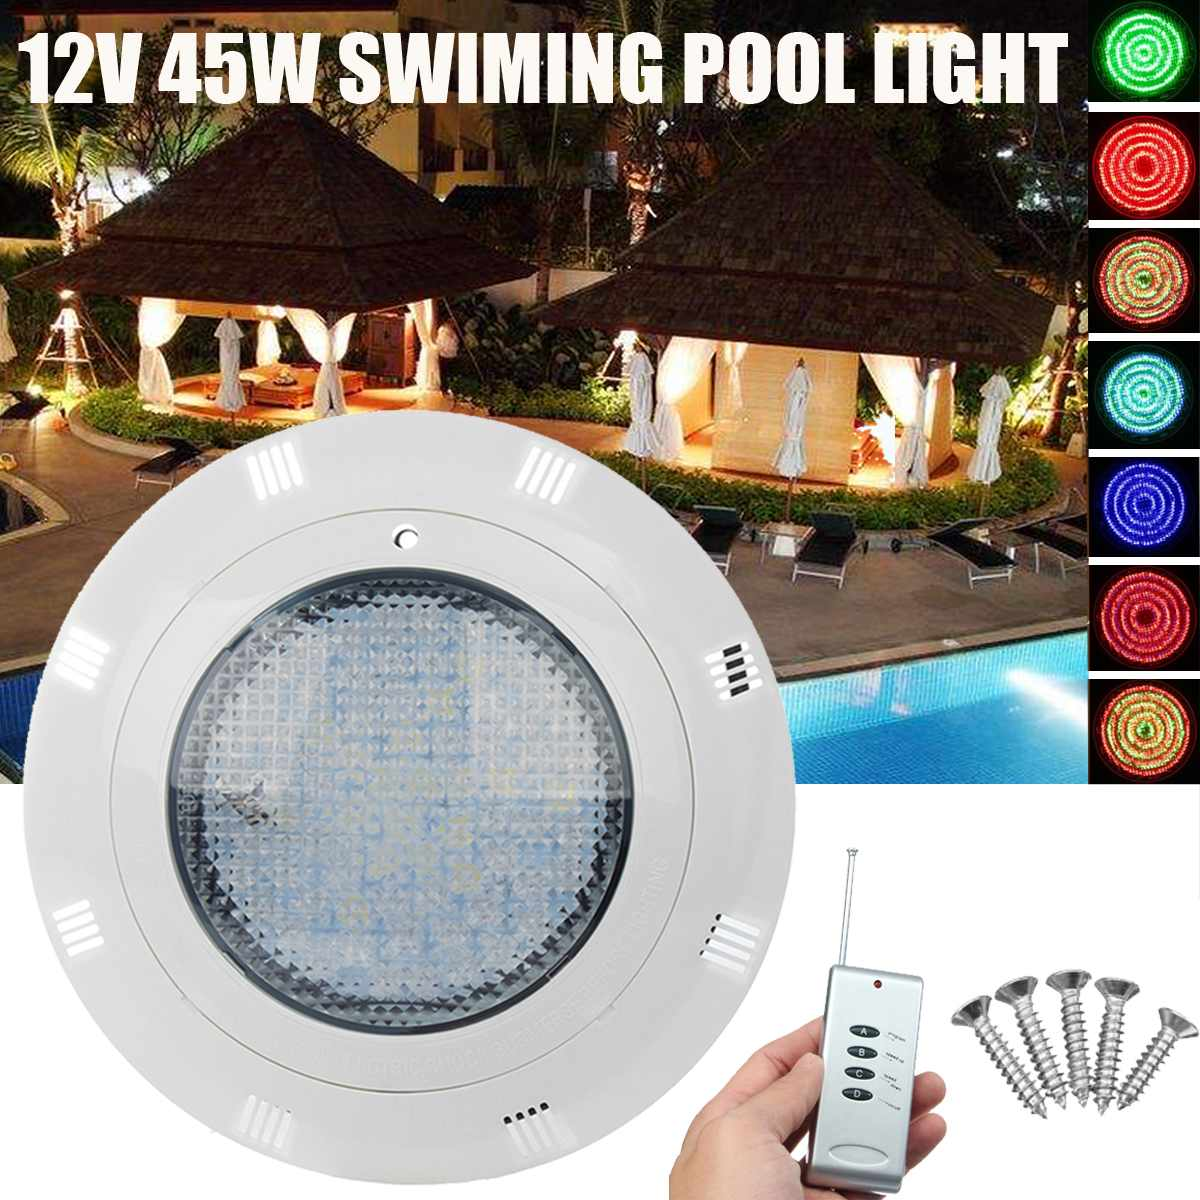 AC12V LED RGB Swimming Pool Light 45W With Remote Controller Waterproof IP68 Submersible Light Underwater Night Lamp Outdoor